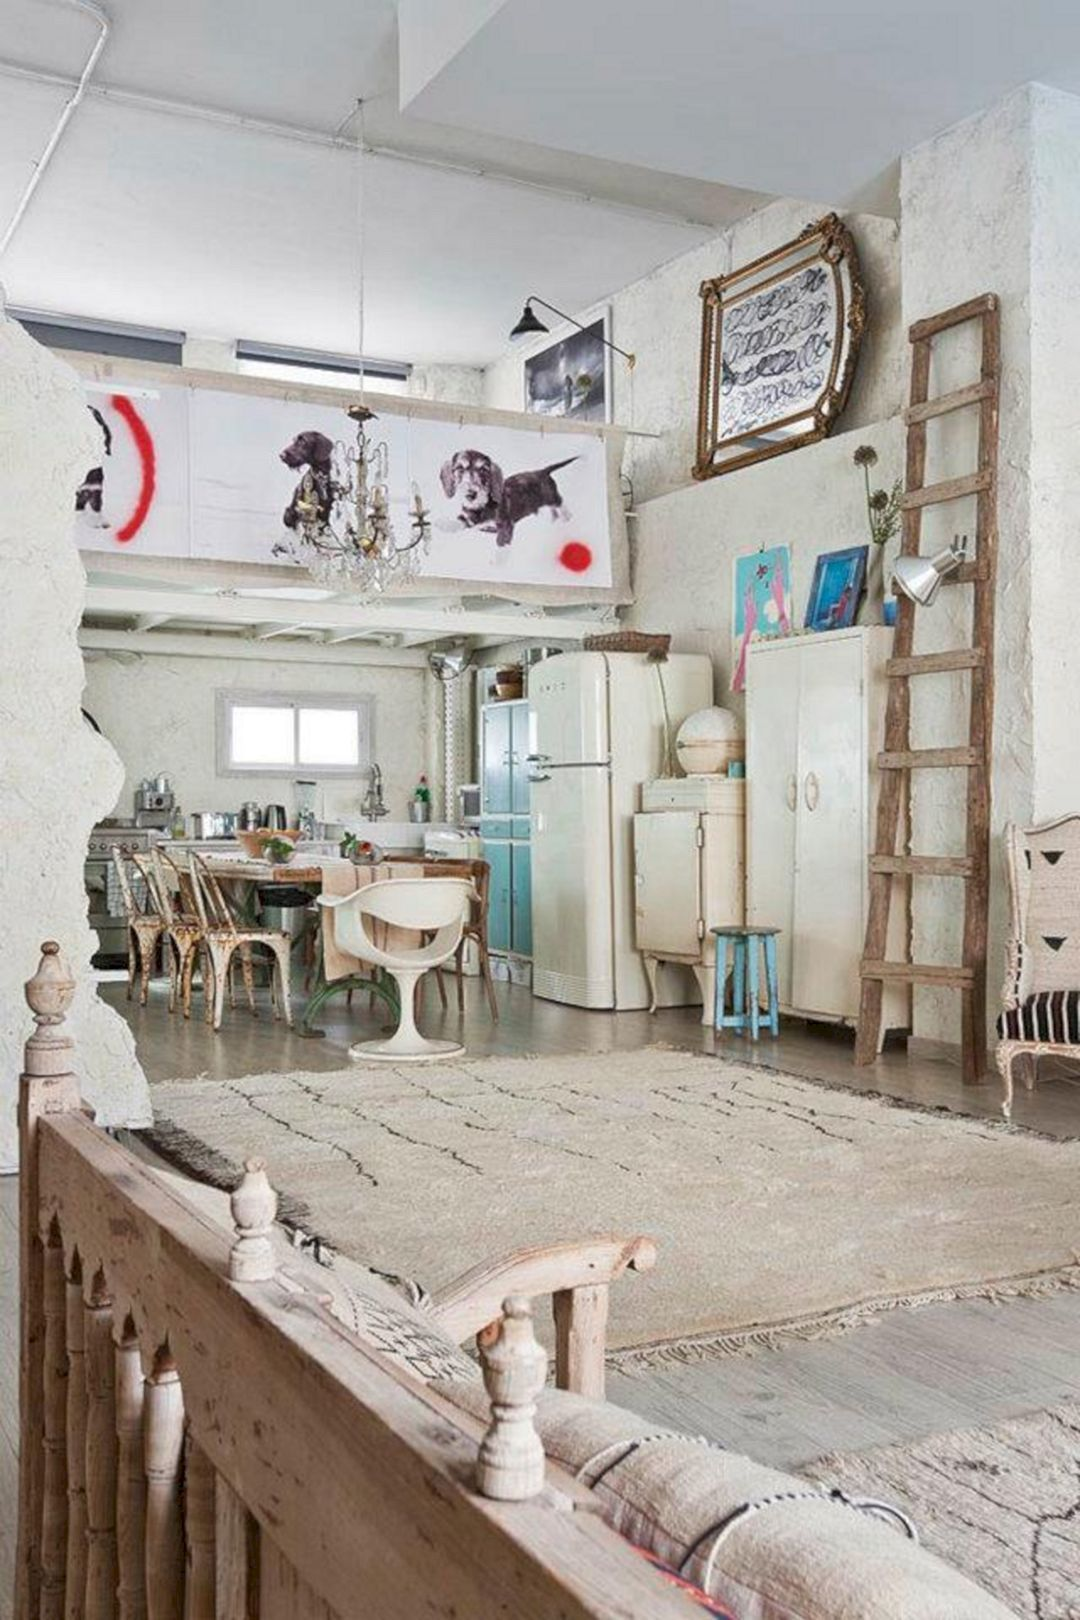 Wicked best home decorating with vintage eclectic decor ideas https spaces also rh in pinterest